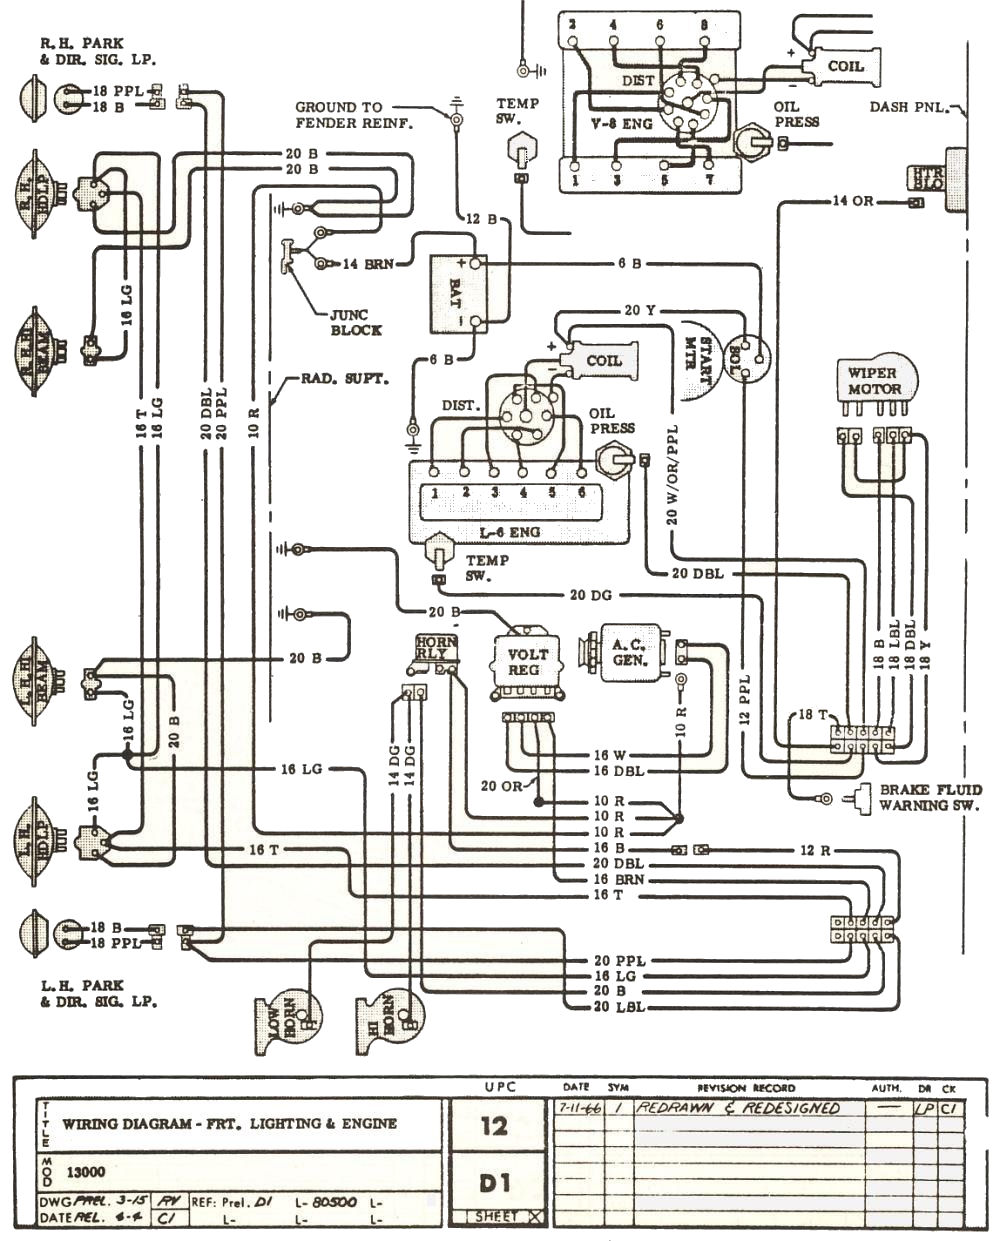 upc 12 d1 wiring diagram frt lighting engine